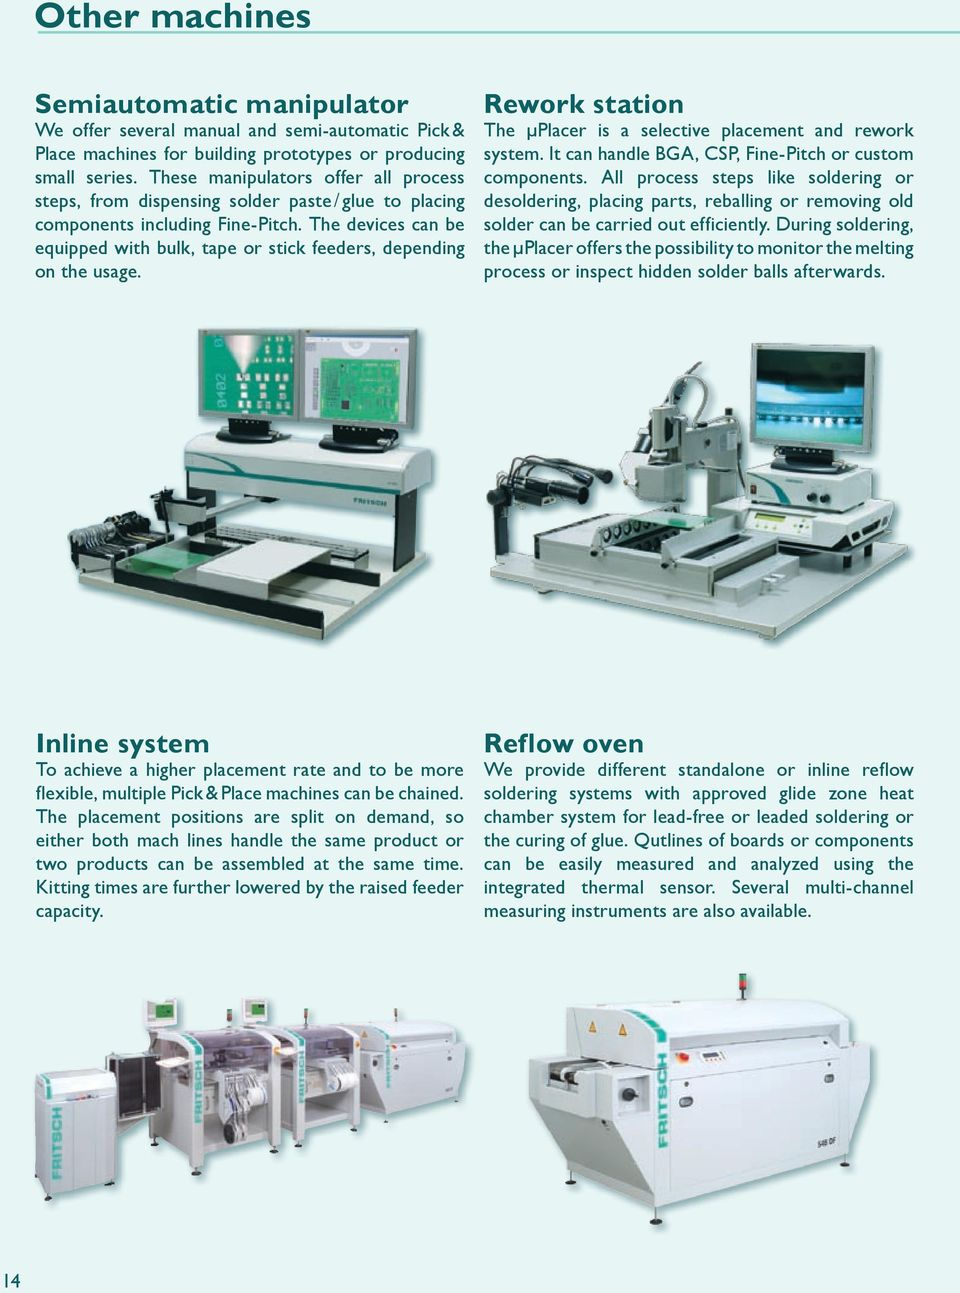 The devices can be equipped with bulk, tape or stick feeders, depending on the usage. Rework station The µplacer is a selective placement and rework system.